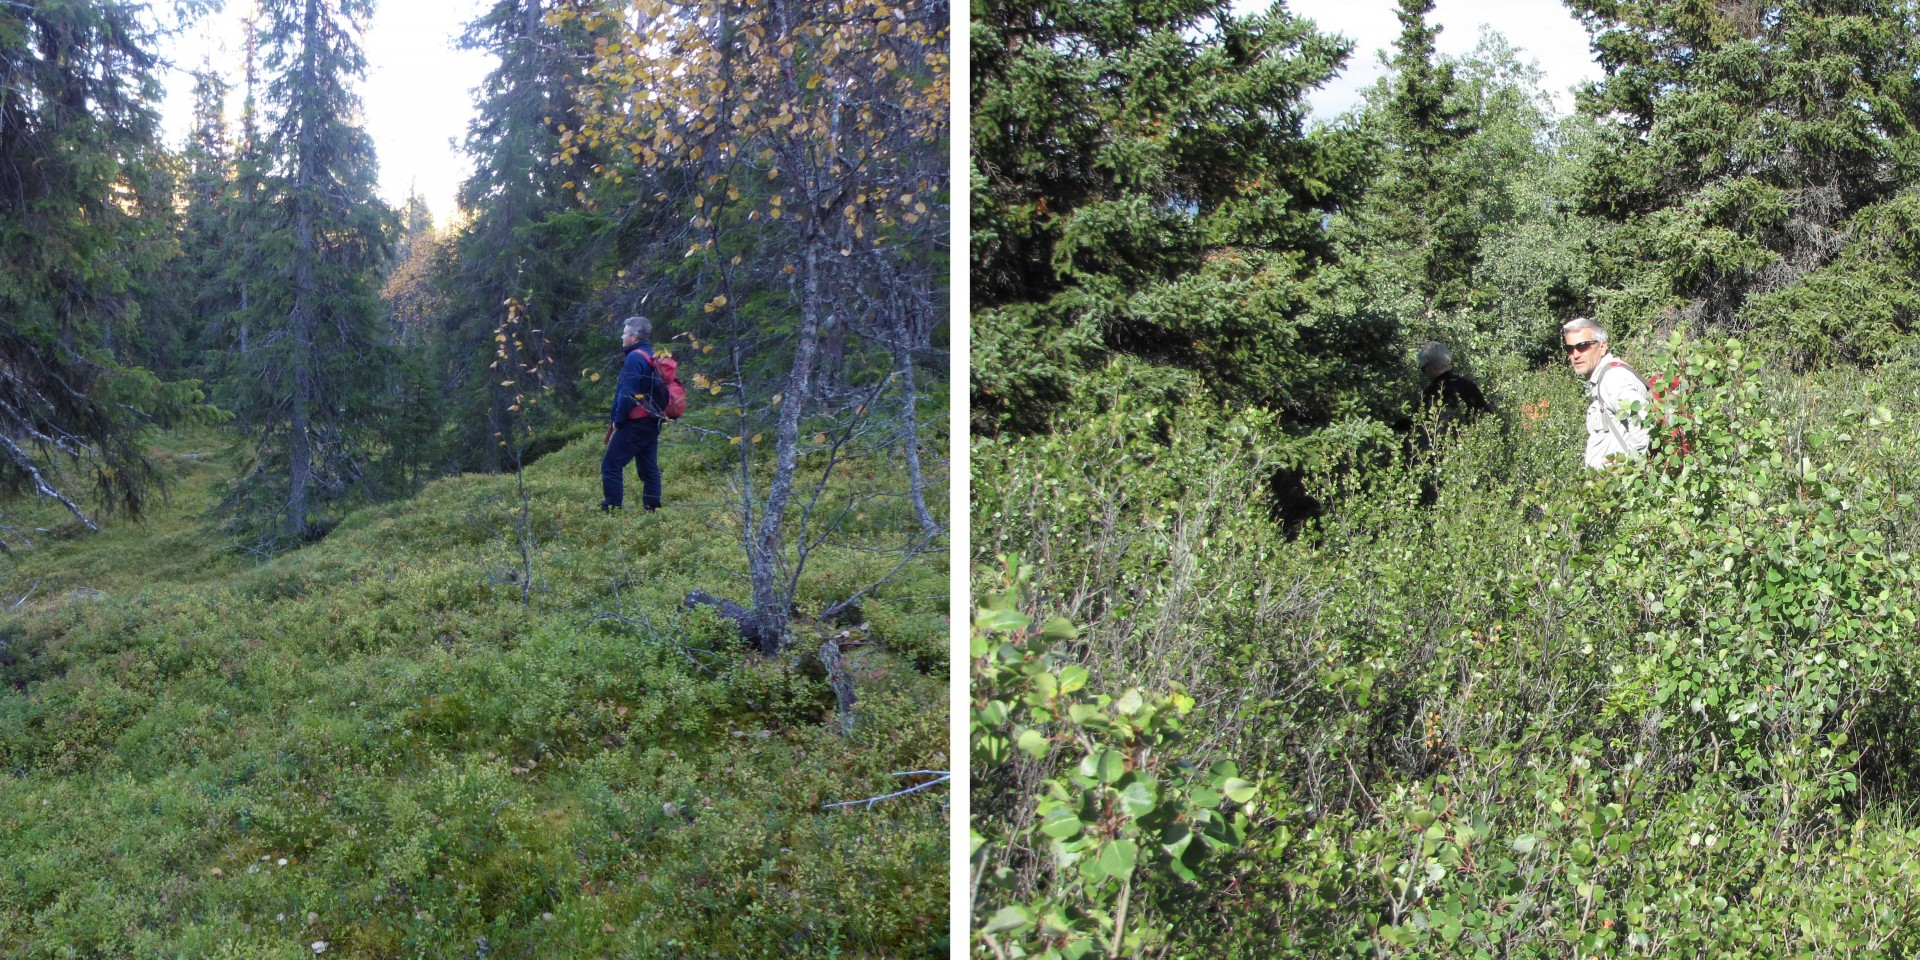 Canadian boreal forests are characterized by many shrubs and a mossy ground cover, whereas Scandinavian forests have little shrub cover, a taller, denser tree canopy. Photo cred: Stan Boutin